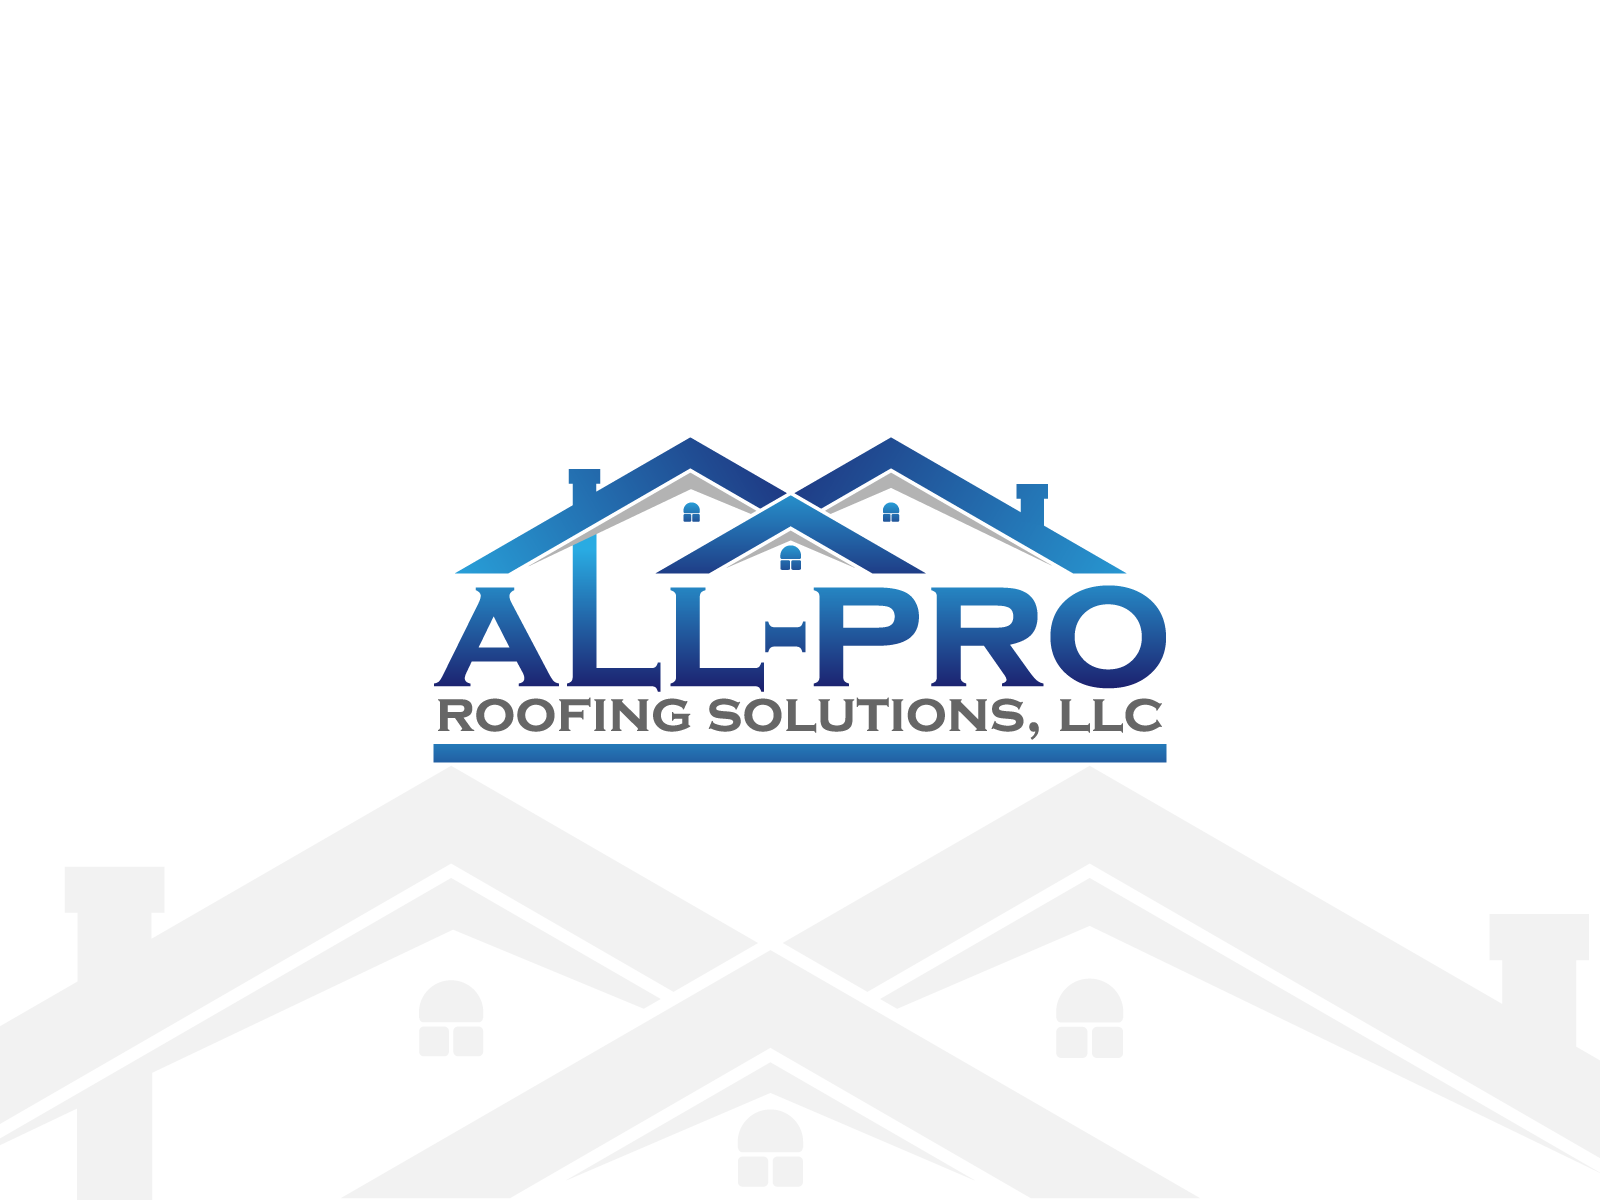 Create a simple, modern, eye catchy logo for roofing business